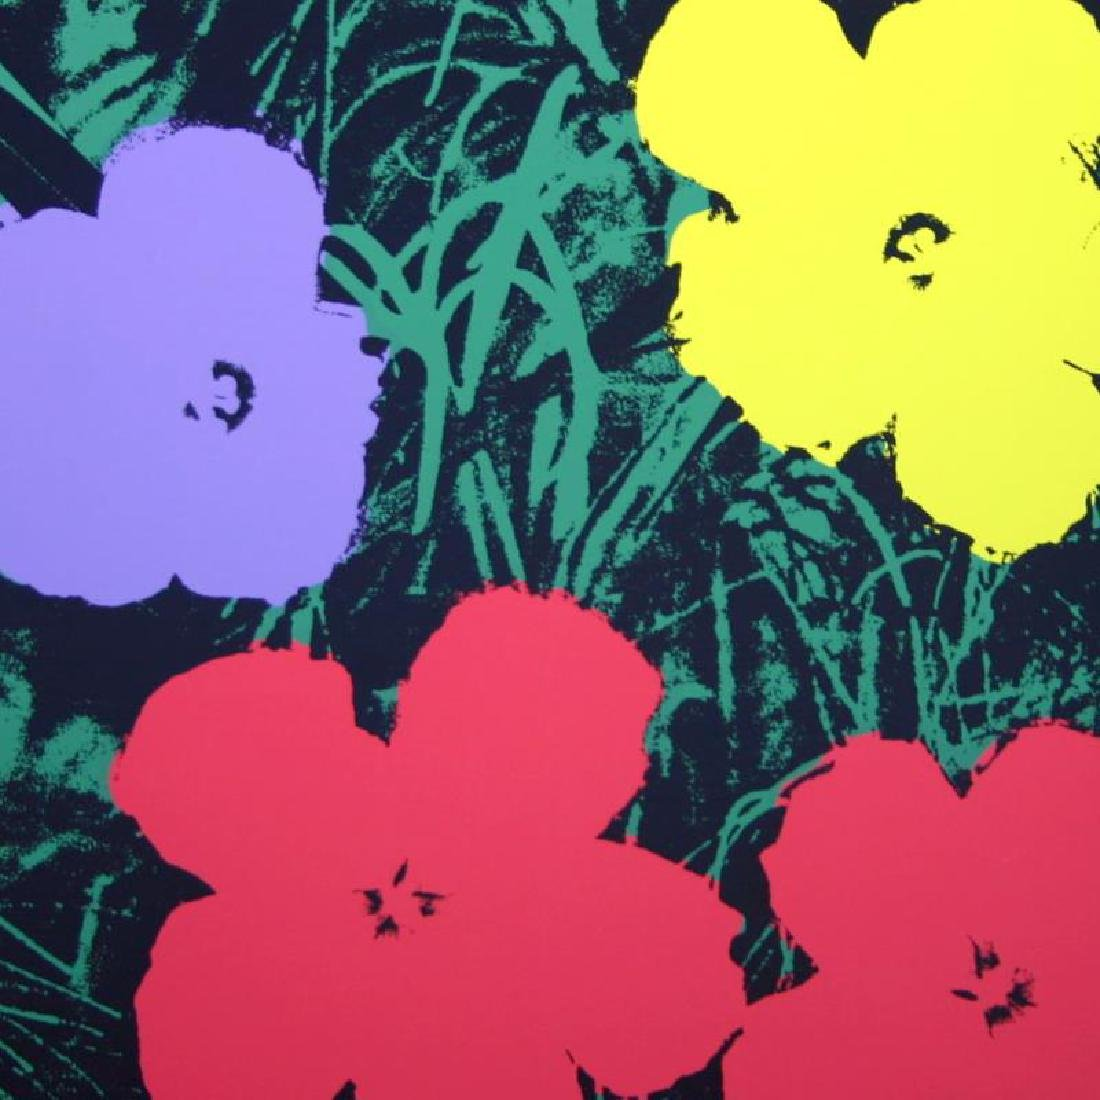 Flowers 11.73 by Warhol, Andy - 2